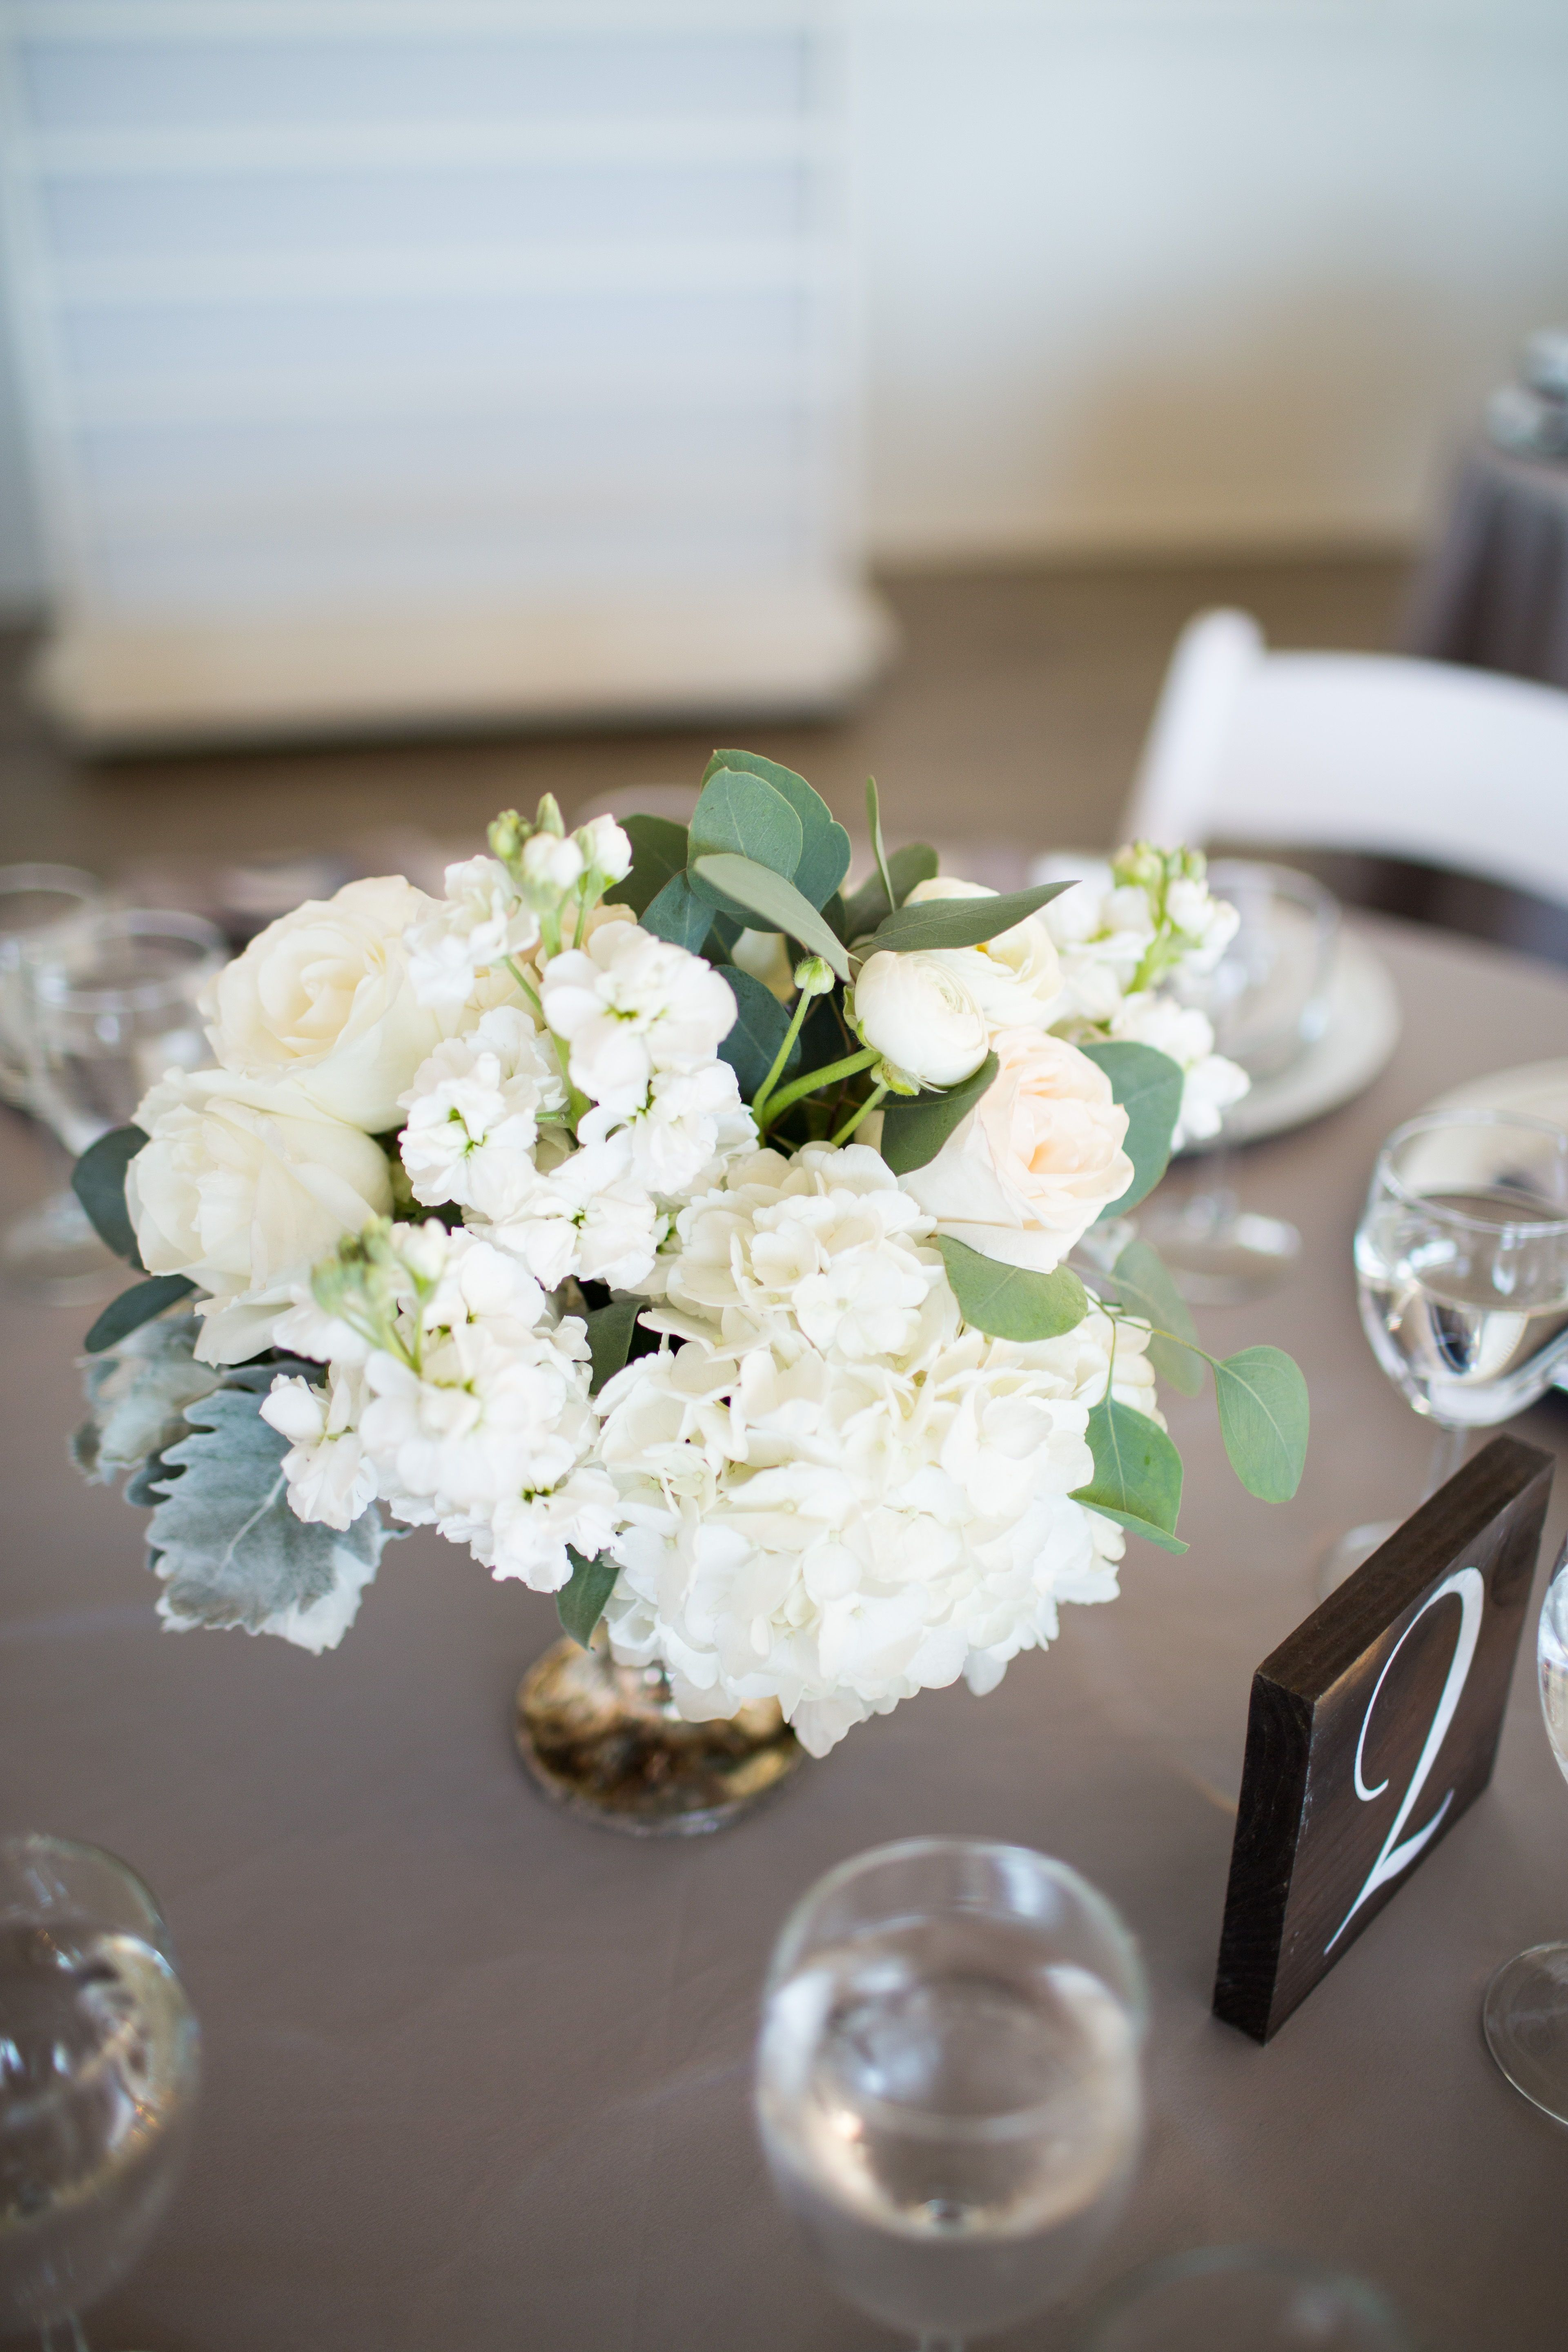 Wedding ideas spring  When planning your wedding think about how the whole wedding will